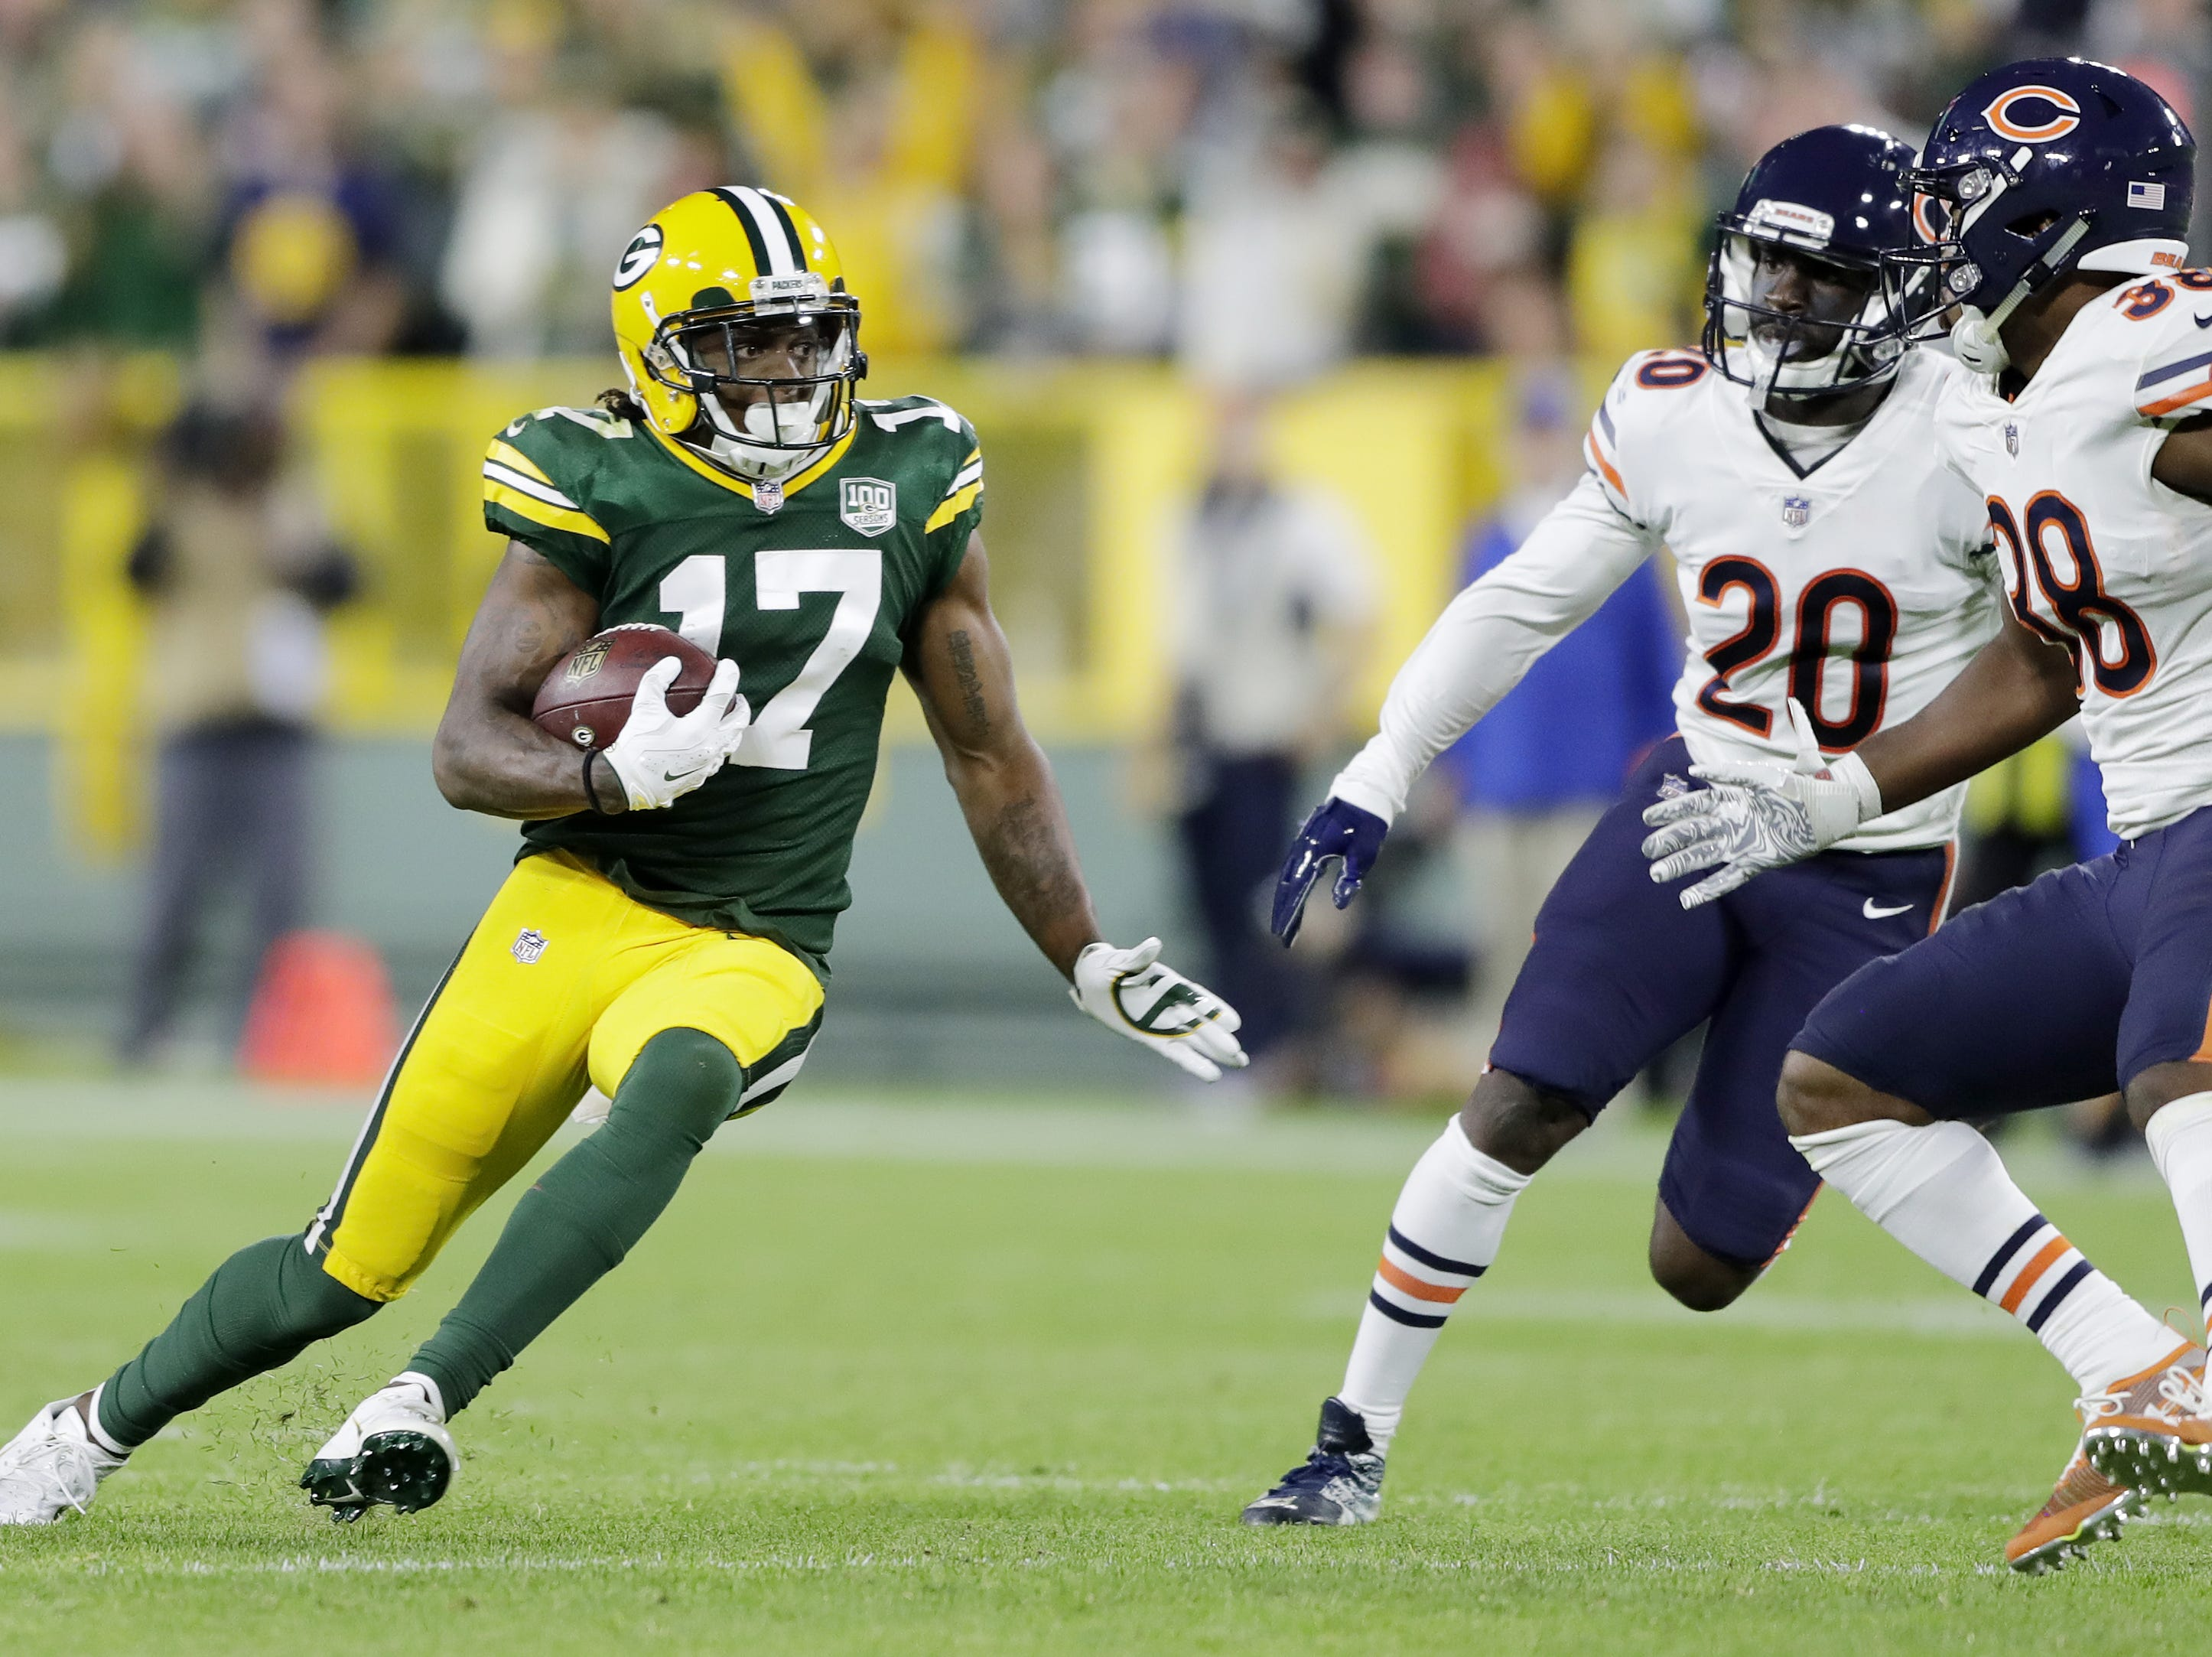 Green Bay Packers wide receiver Davante Adams (17) runs after a catch to score a touchdown against the Chicago Bears in the fourth quarter at Lambeau Field on Sunday, September 9, 2018 in Green Bay, Wis.